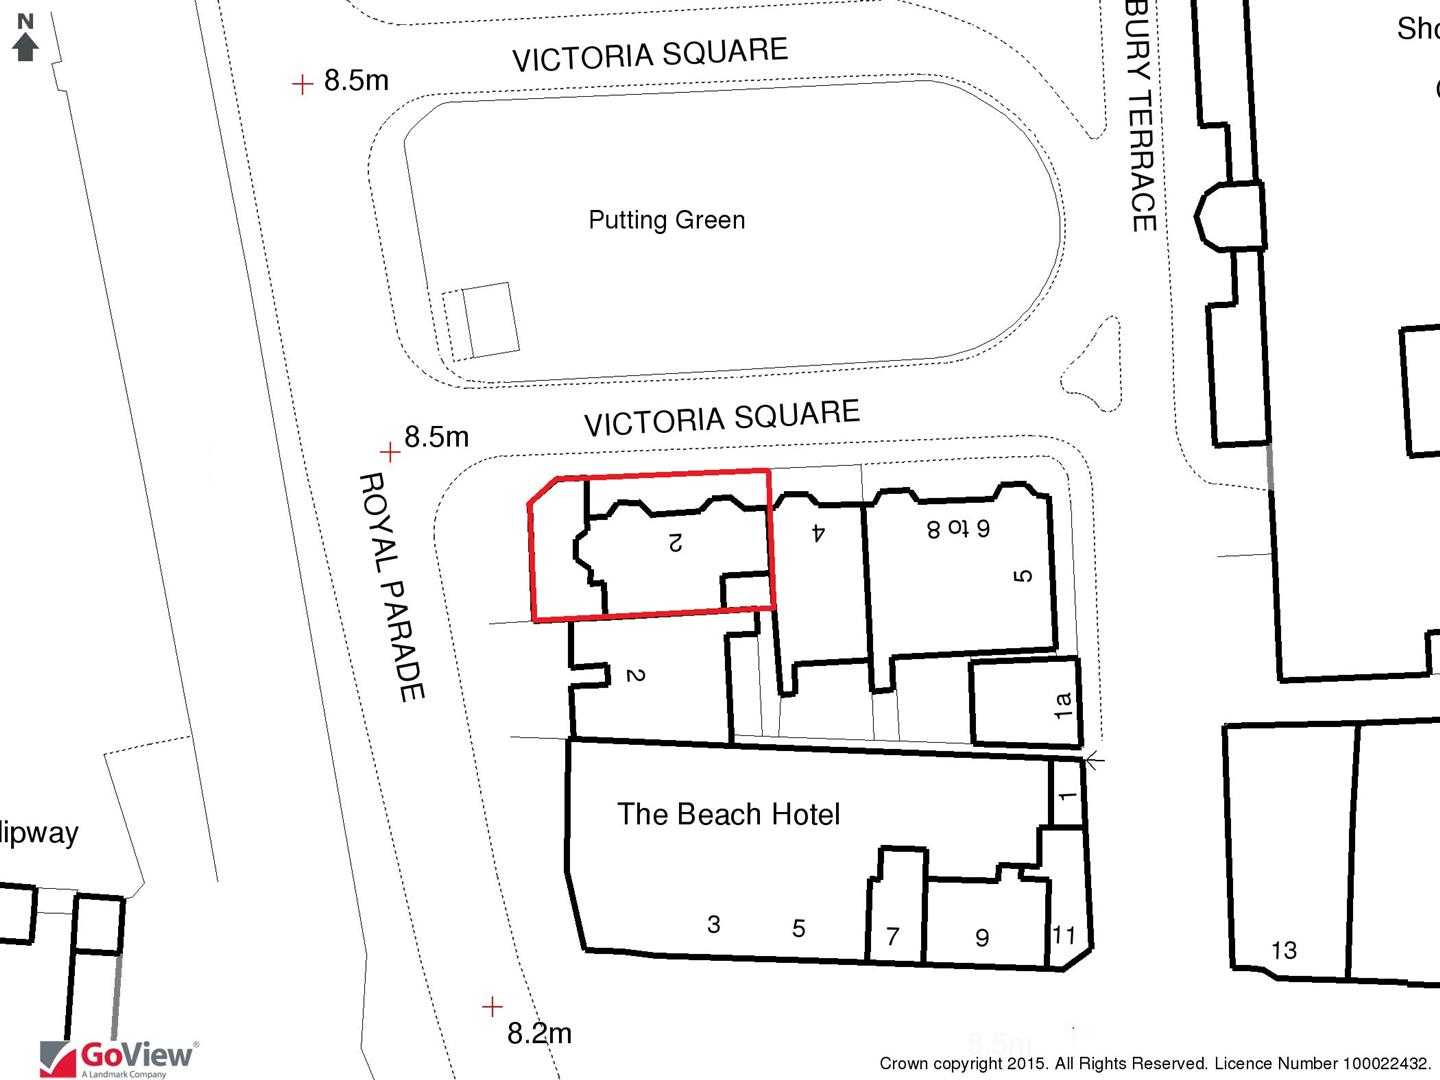 Images for 2 Victoria Square, Weston-Super-Mare EAID:hollismoapi BID:11